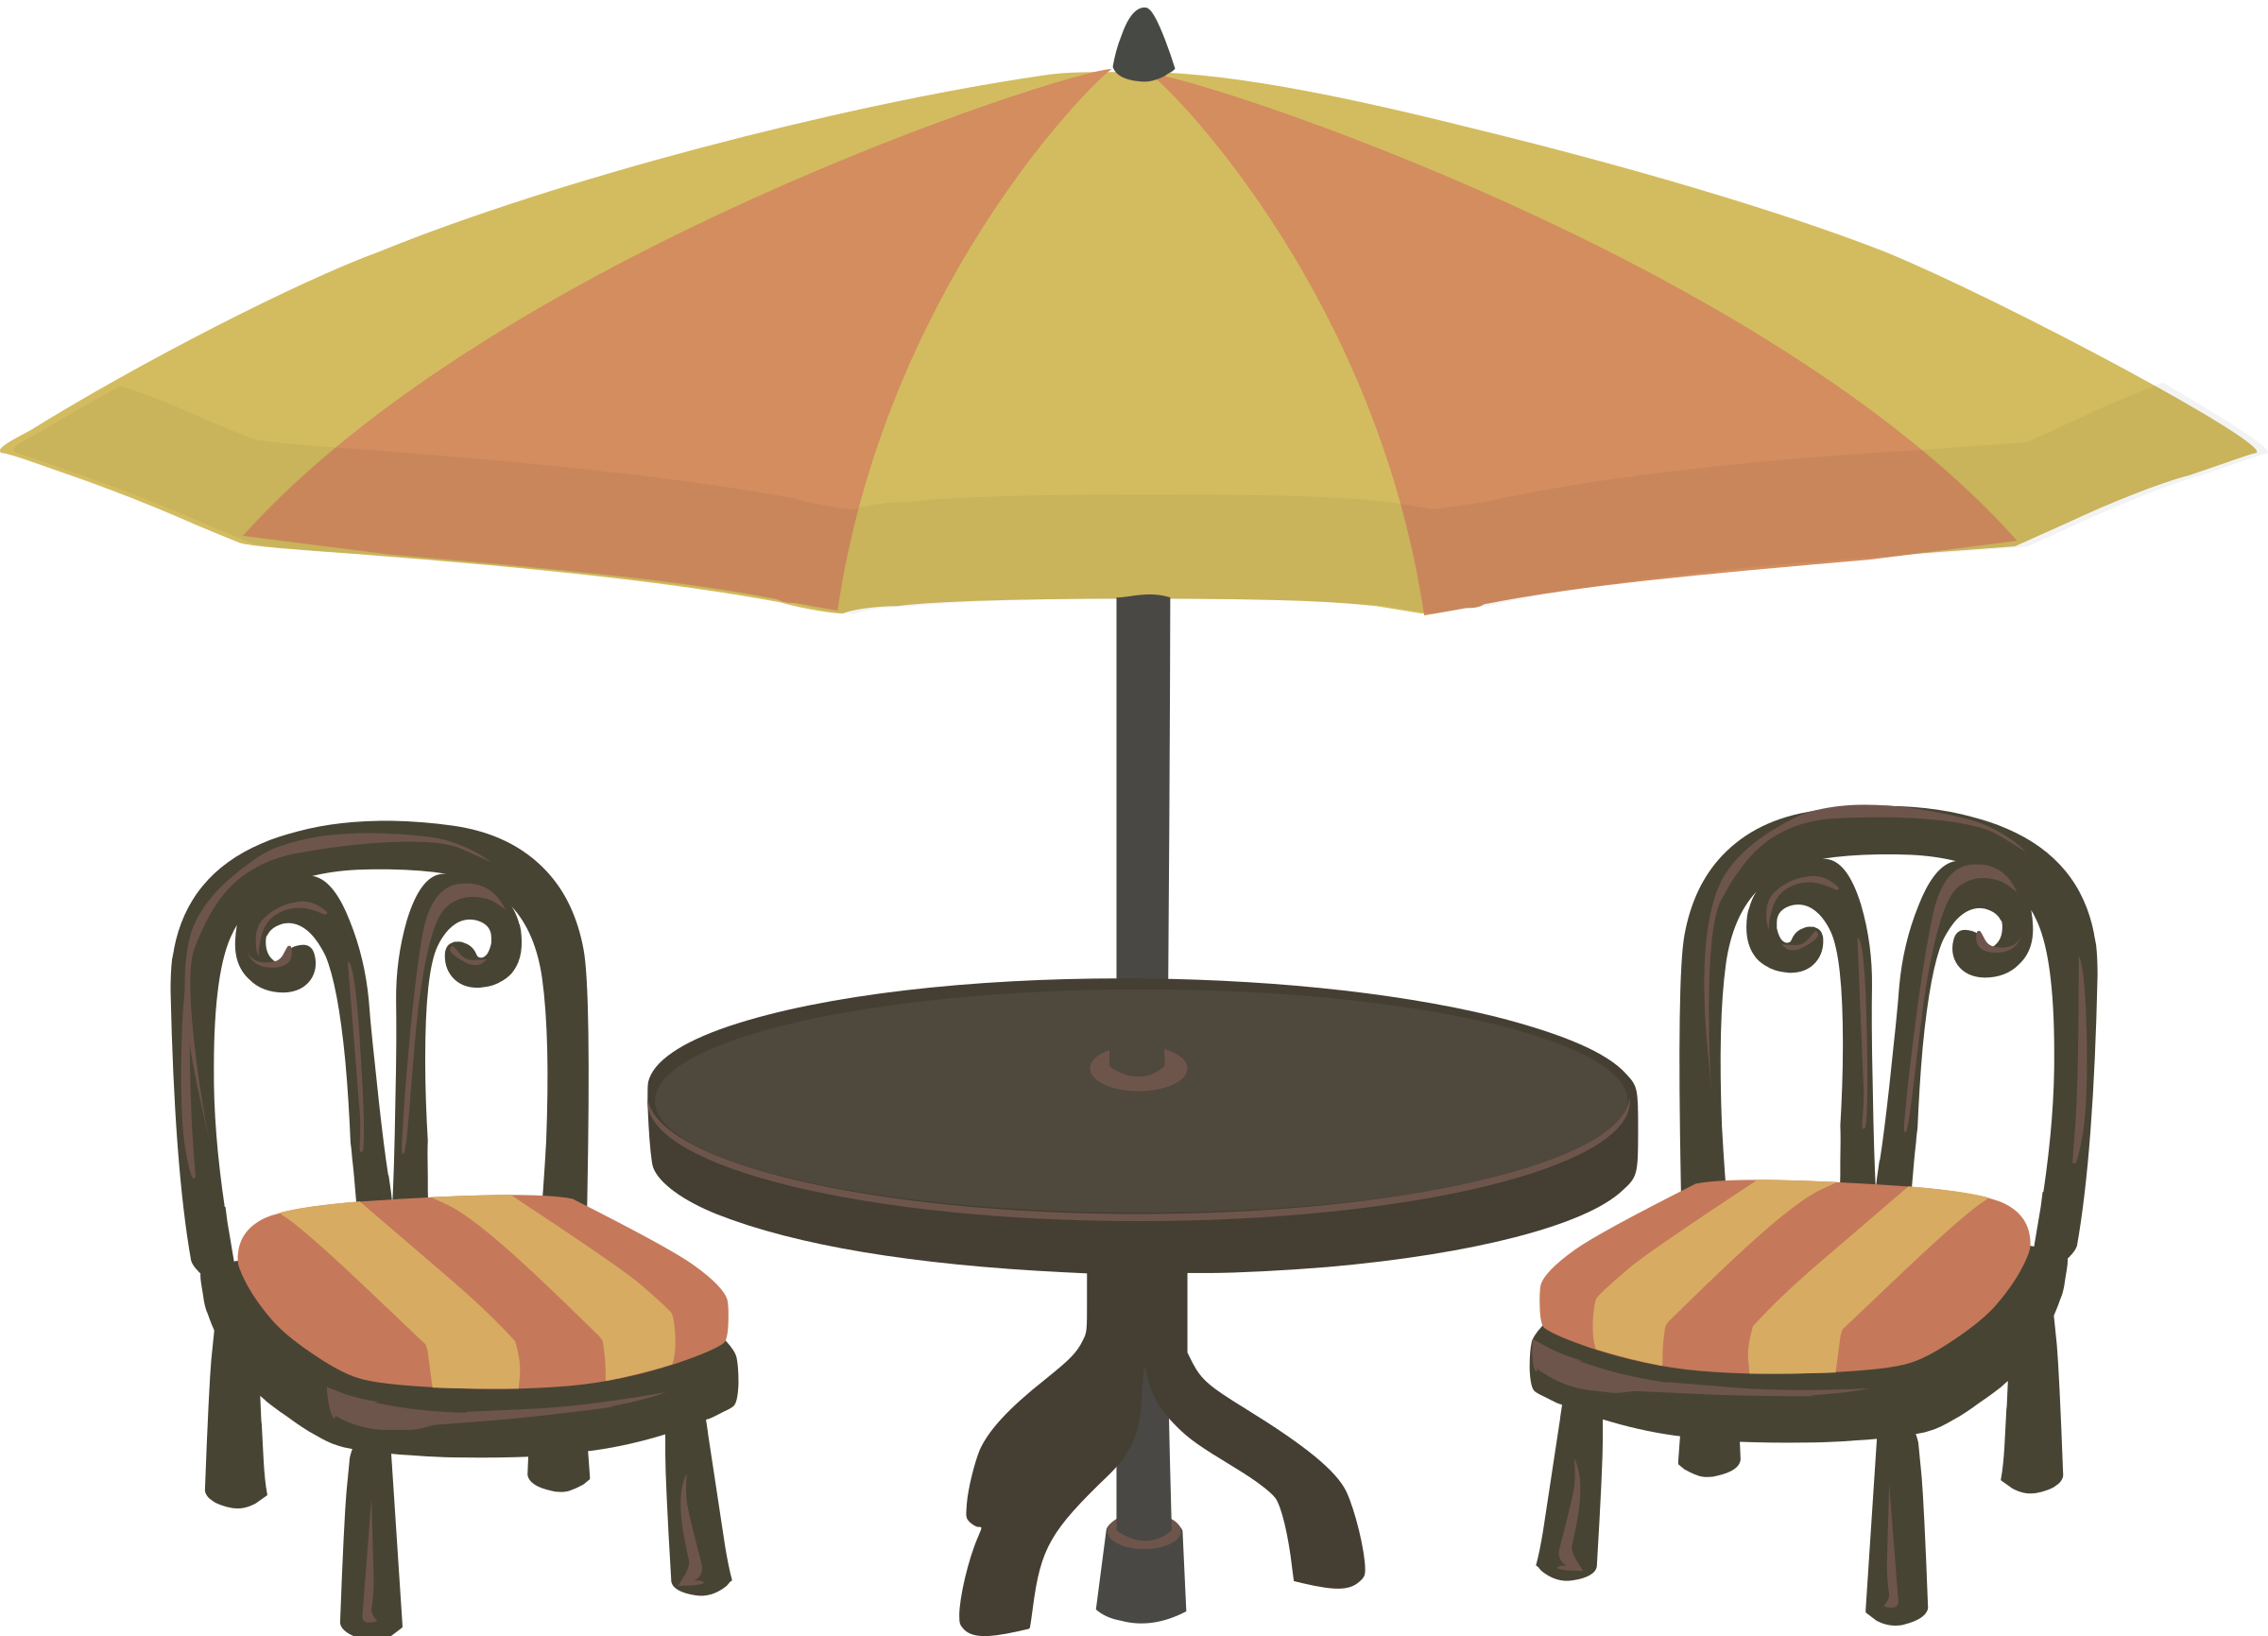 Cafe clipart outdoor cafe. Seating icons png free